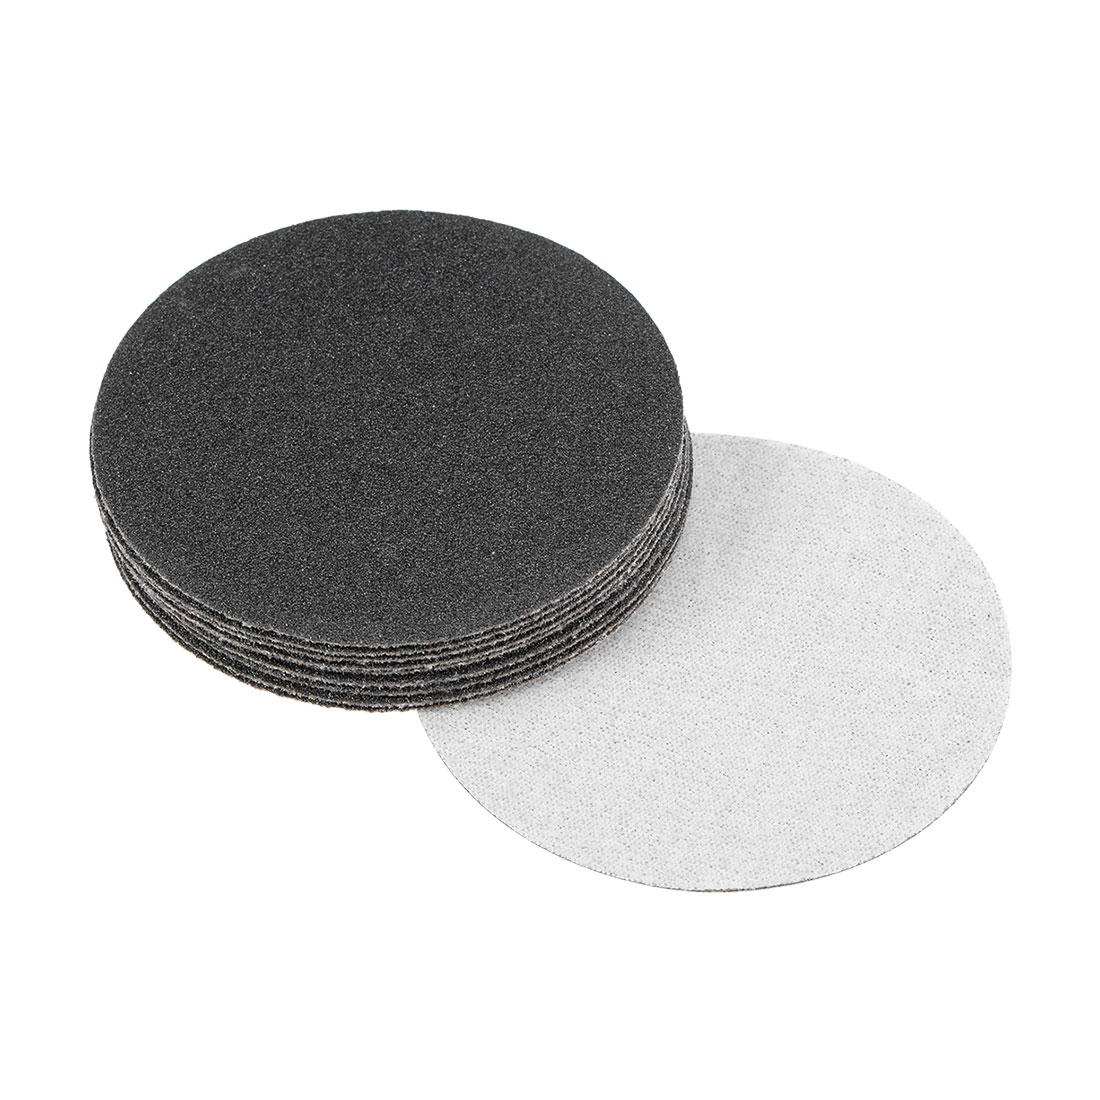 3 inch Wet Dry Discs 100 Grit Hook and Loop Sanding Disc Silicon Carbide 10pcs